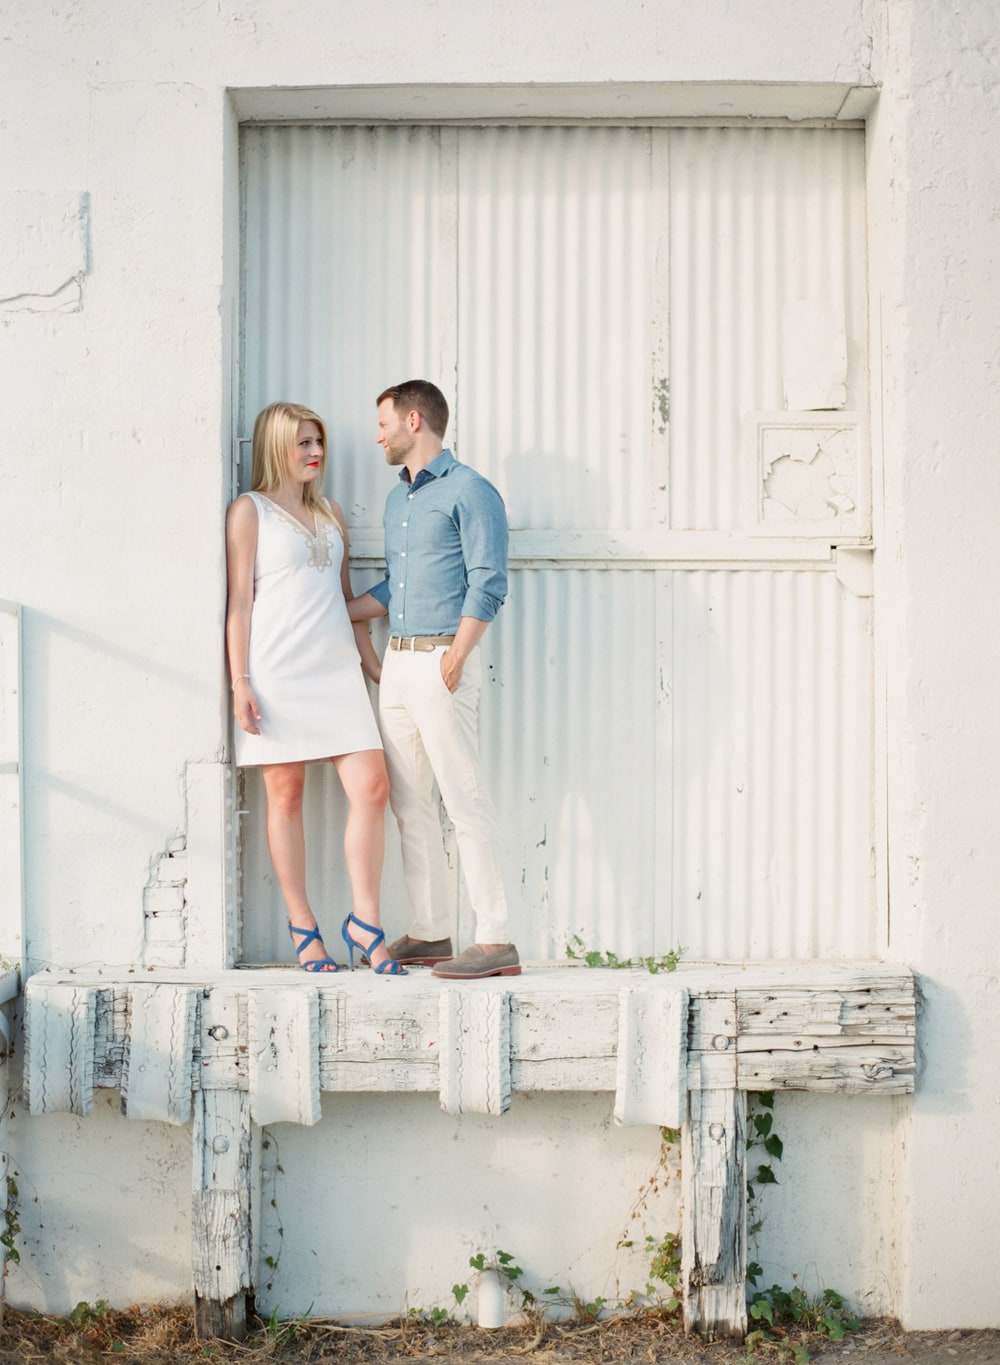 DEEP_ELLUM_TX_FILM_ENGAGEMENT_SHOOT__MATTHEW_MOORE_PHOTOGRAPHY_00043.jpg